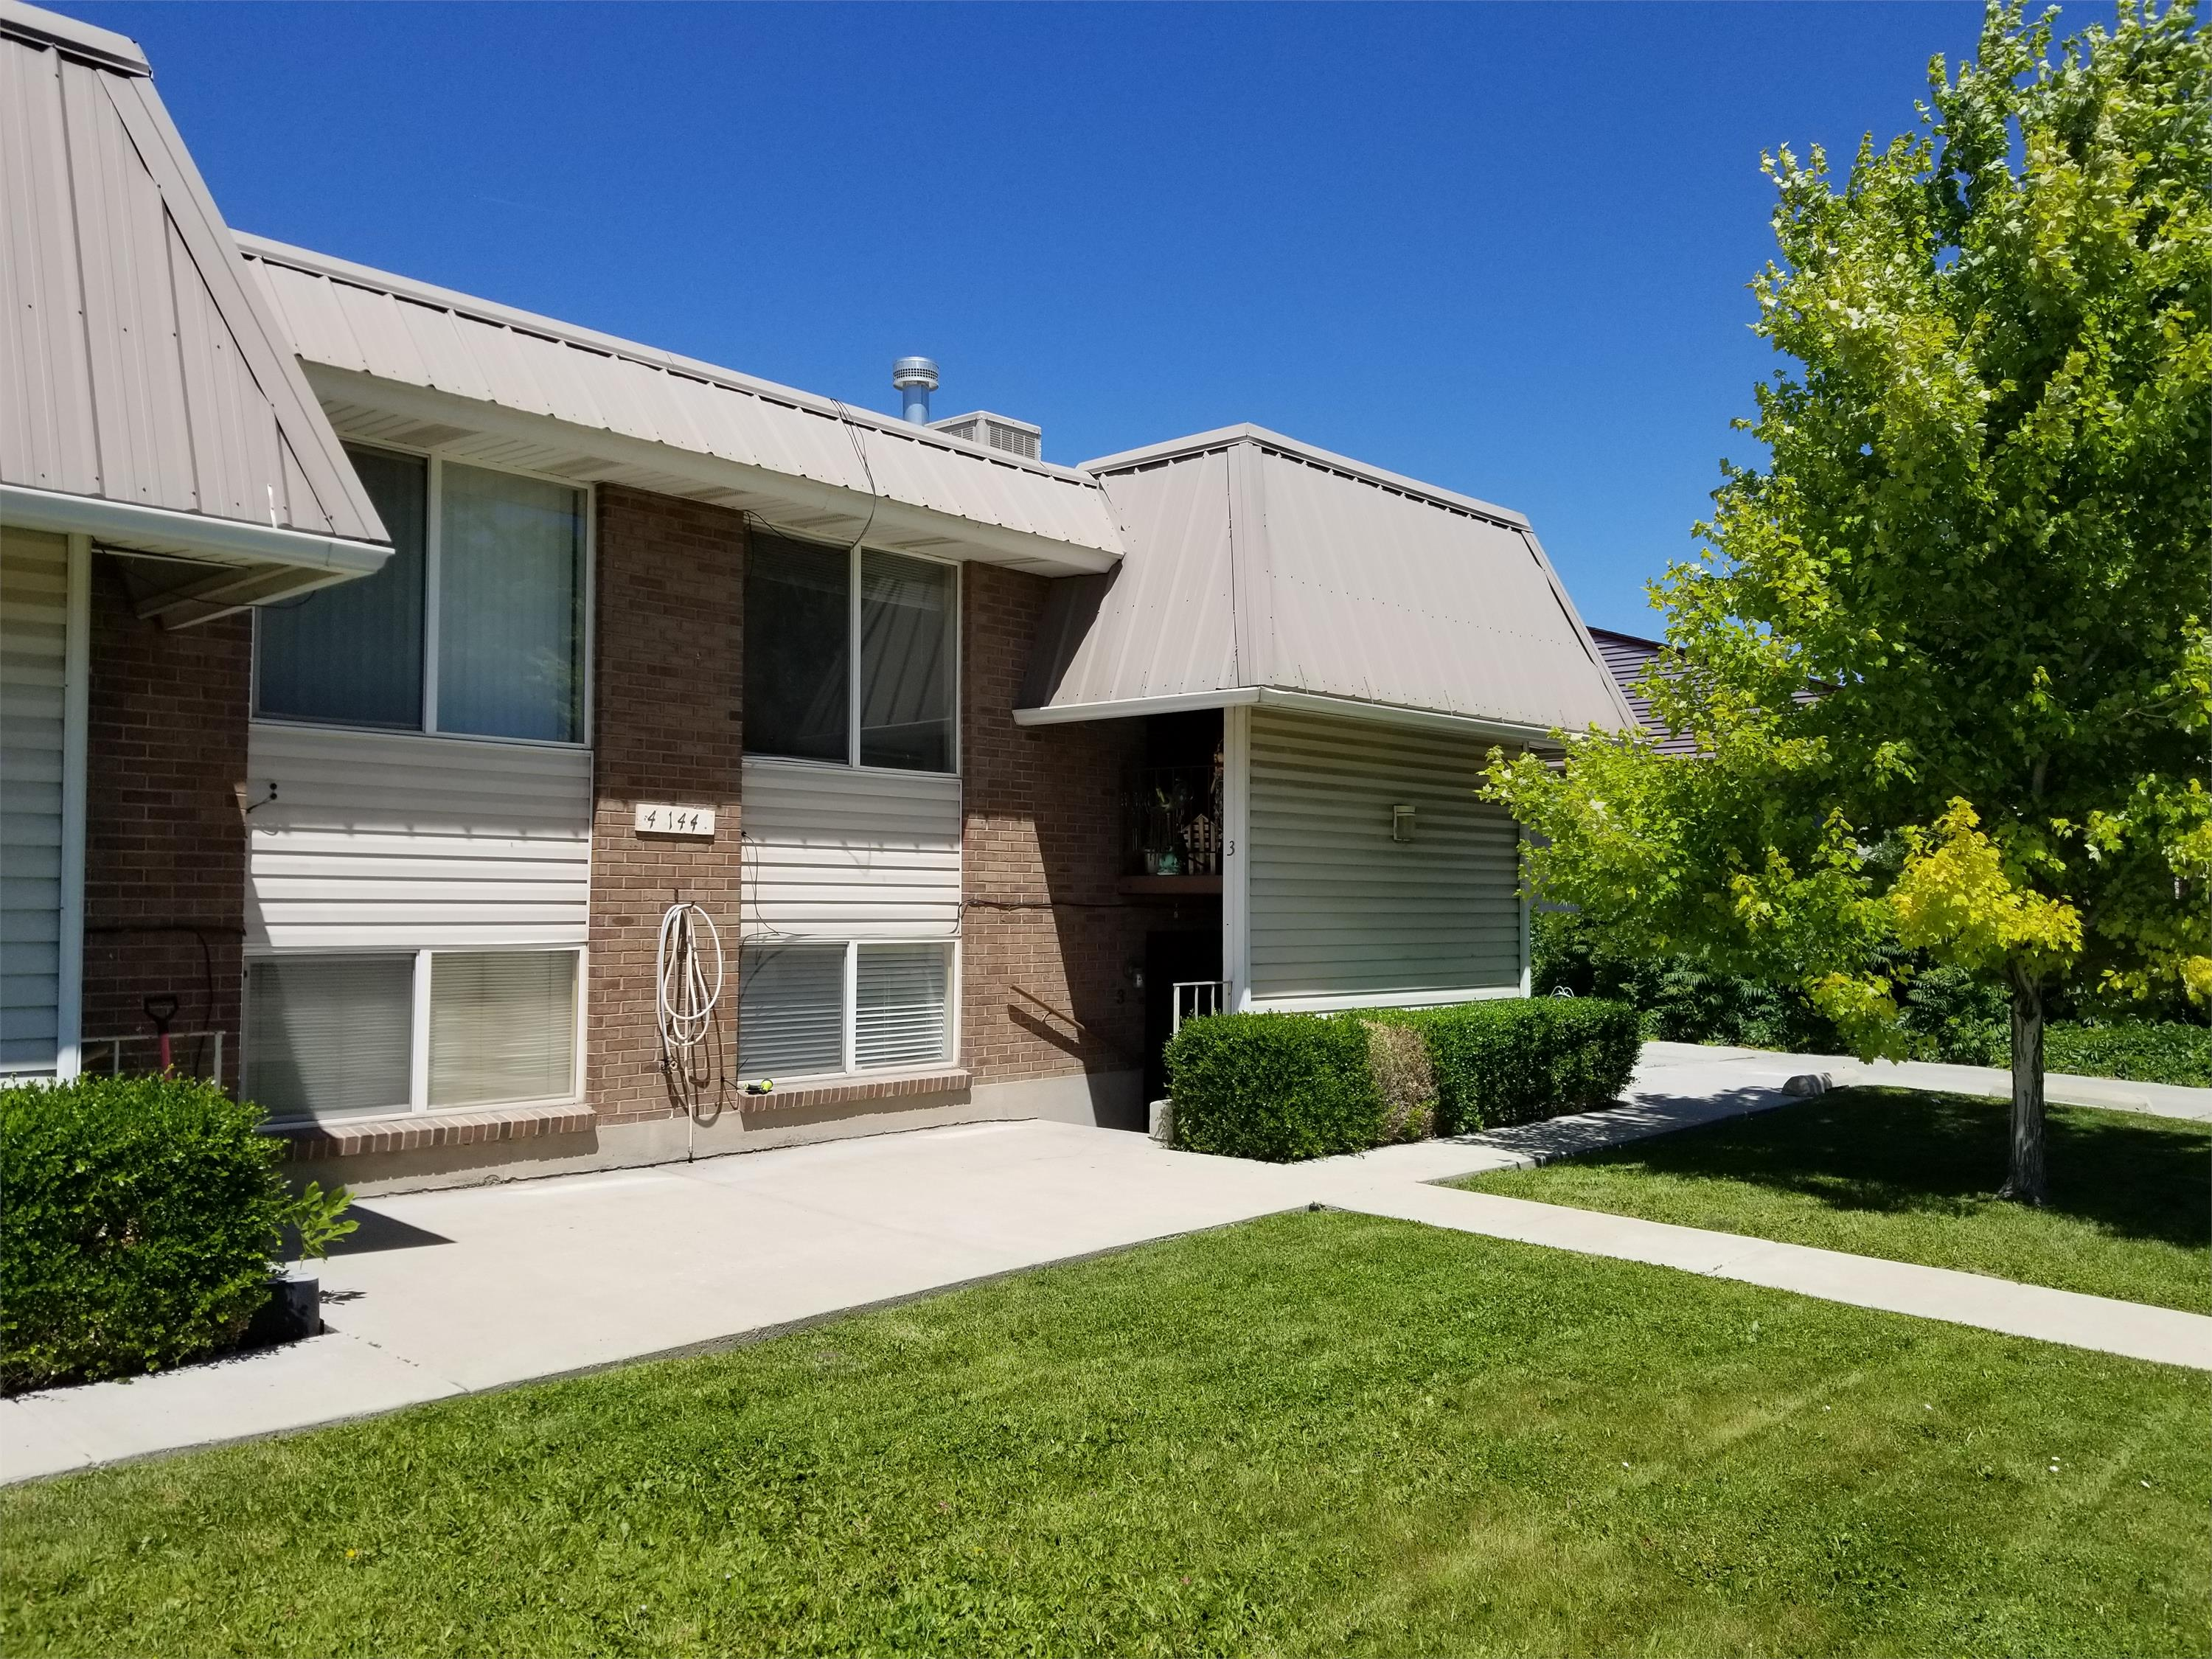 Apartments in North Central Taylorsville, West Valley City, UT (see